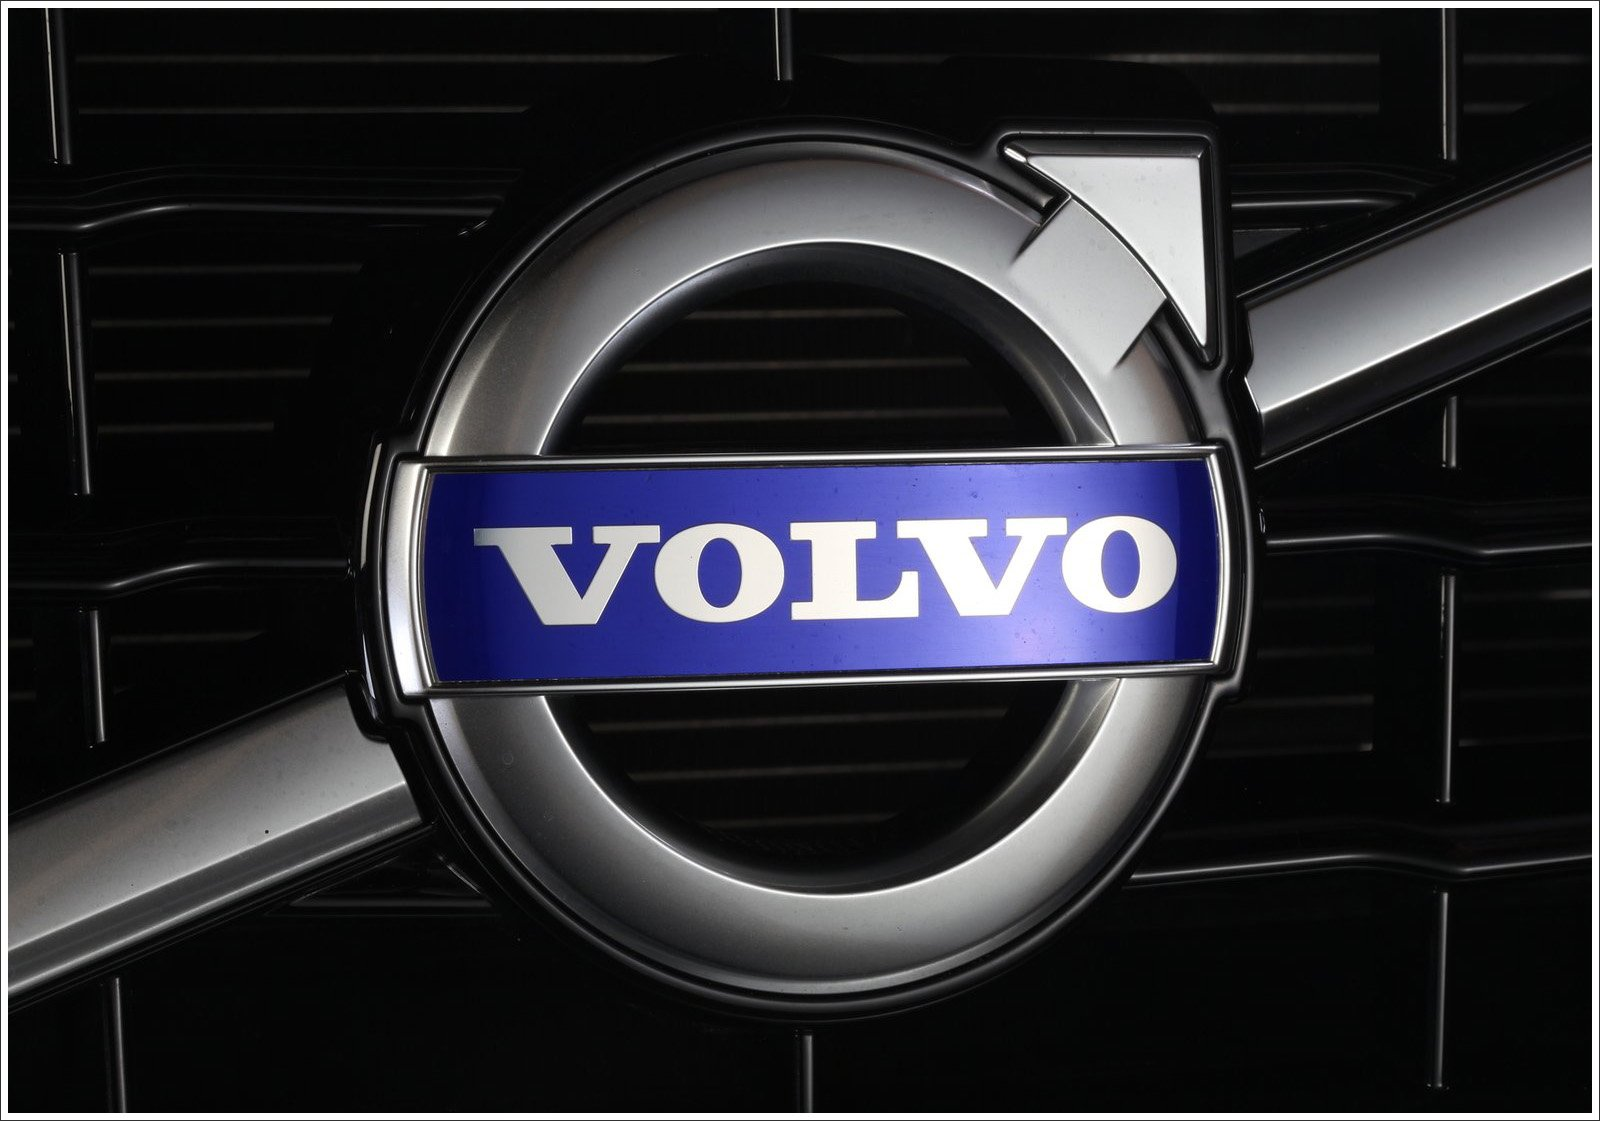 3d Hd Car Wallpaper For Laptop Volvo Logo Meaning And History Latest Models World Cars